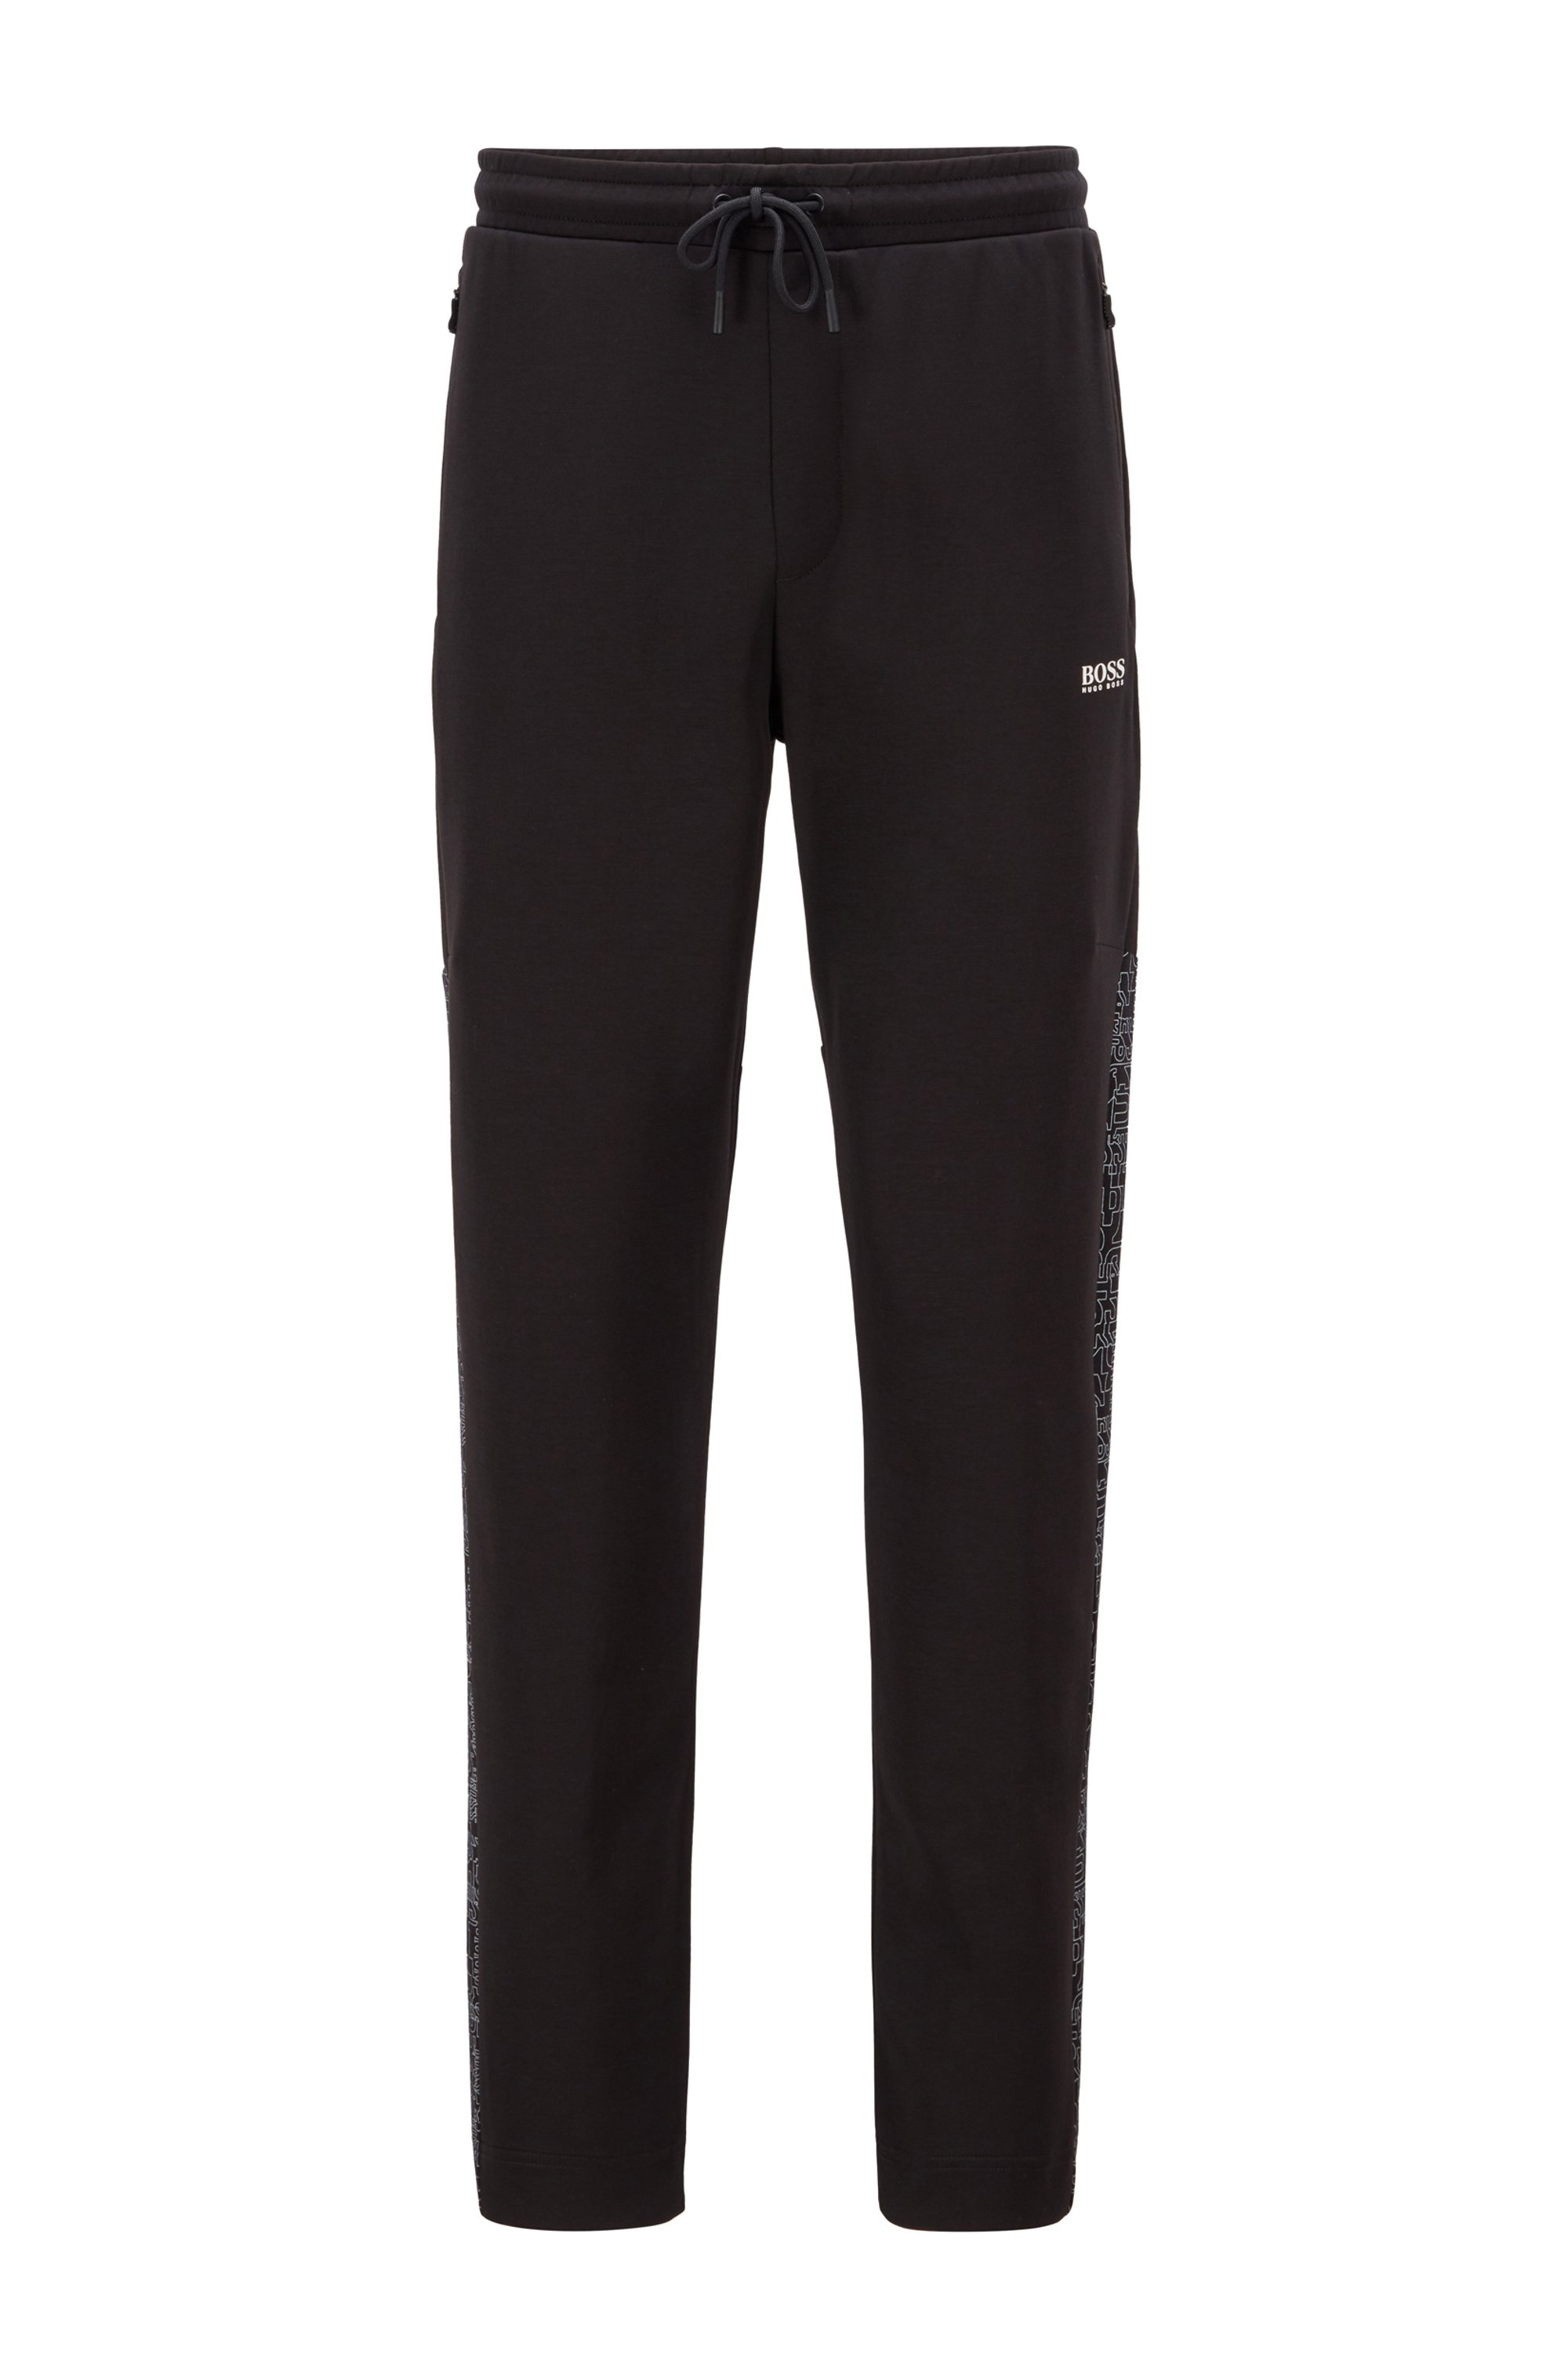 Interlock-jersey tracksuit bottoms with typographical-print side seams, Black